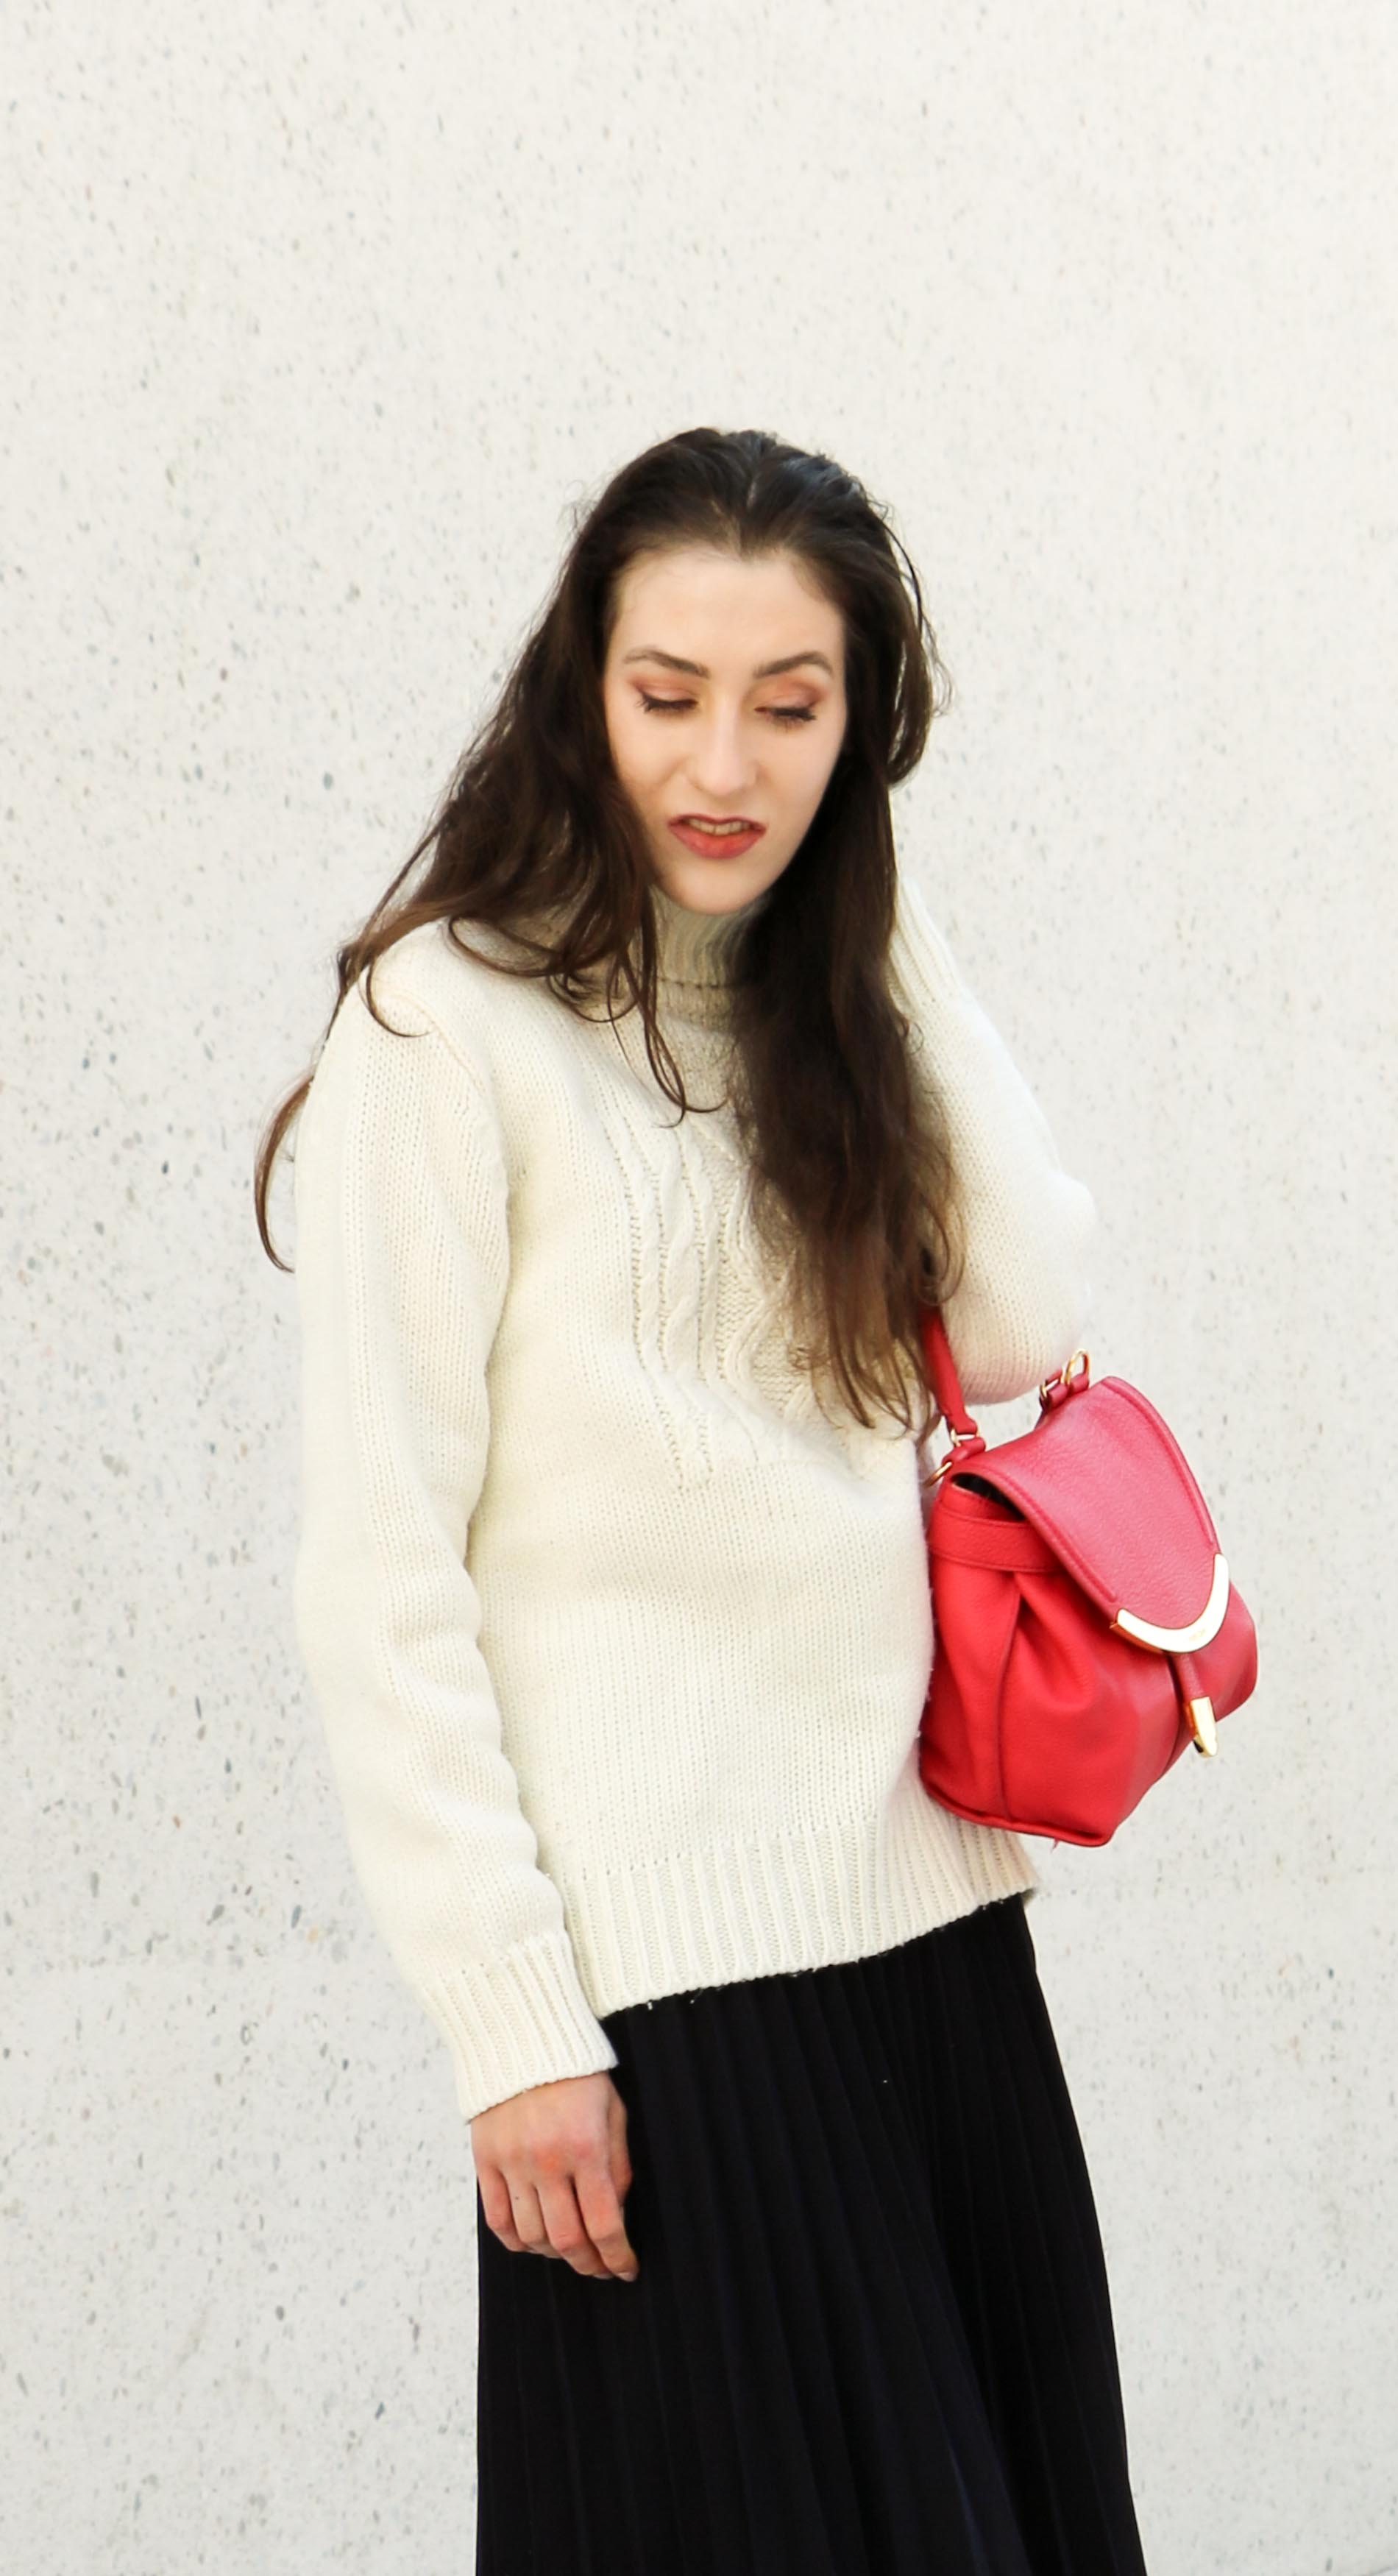 Fashion Blogger Veronika Lipar of Brunette from Wall Street dressed in white oversized cable knit sweater, black pleated midi skirt, pink top handle bag from See by Chloe